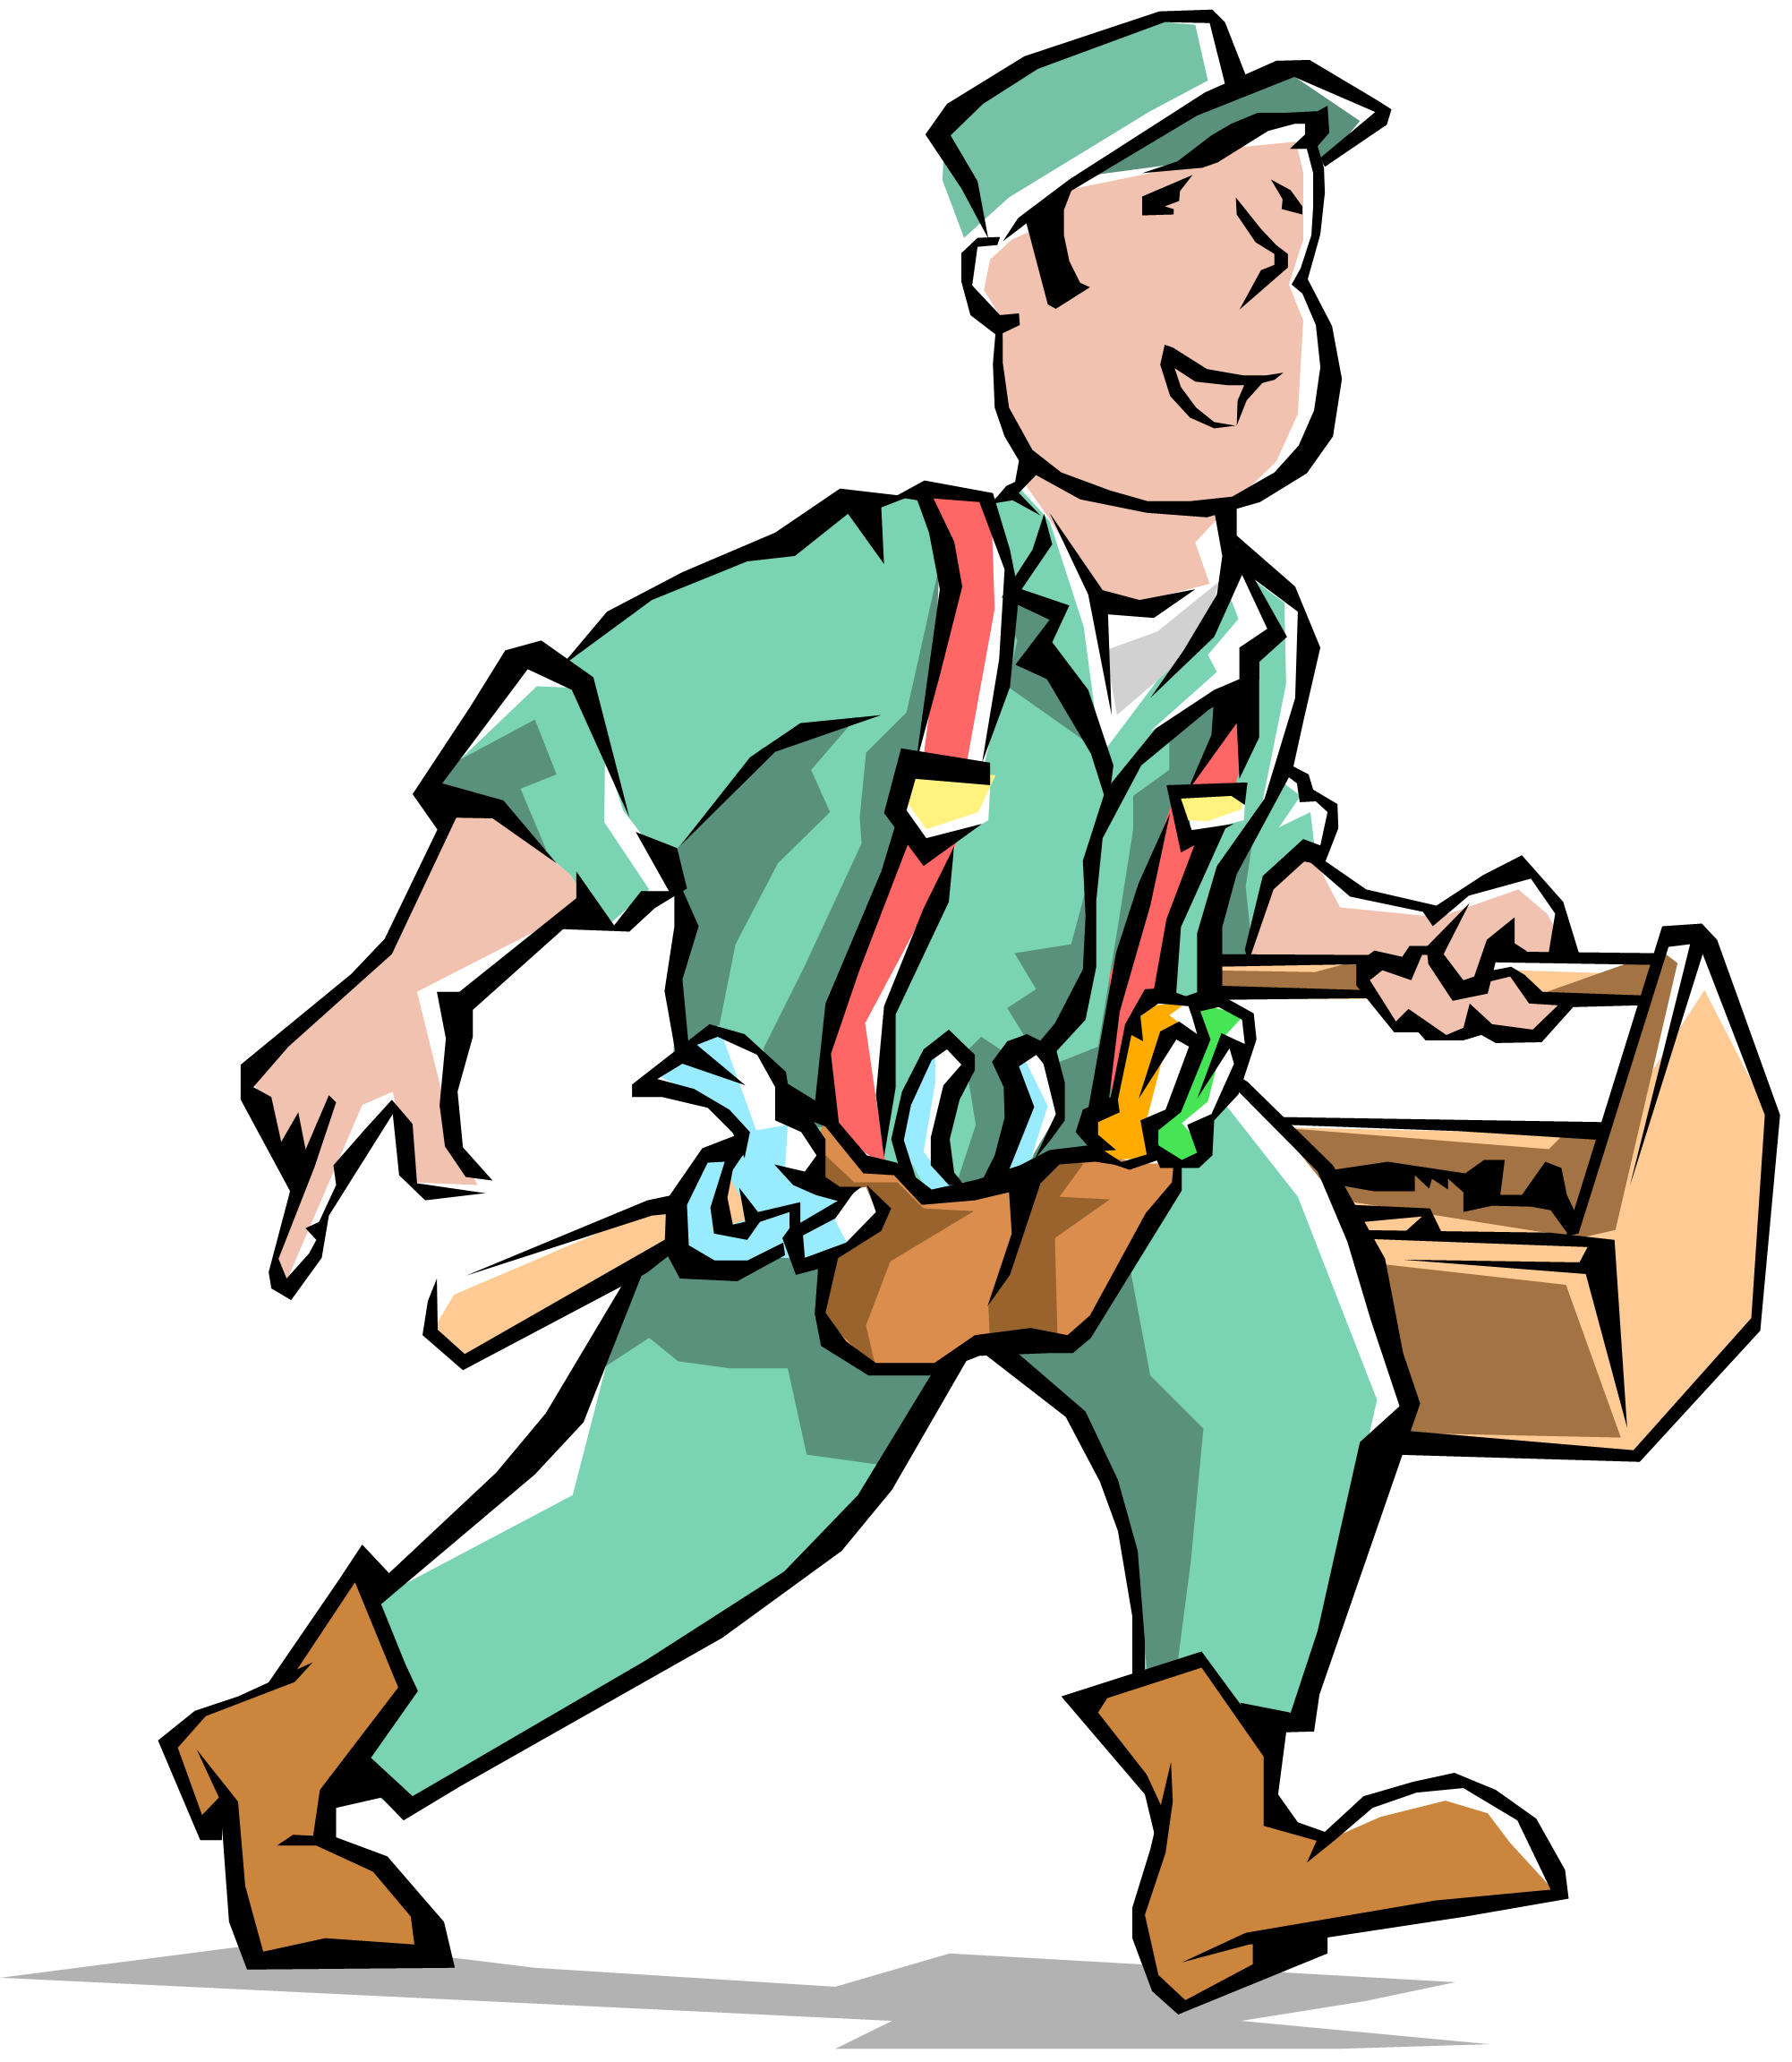 Free handyman cliparts download. Carpenter drawing work clipart svg royalty free library